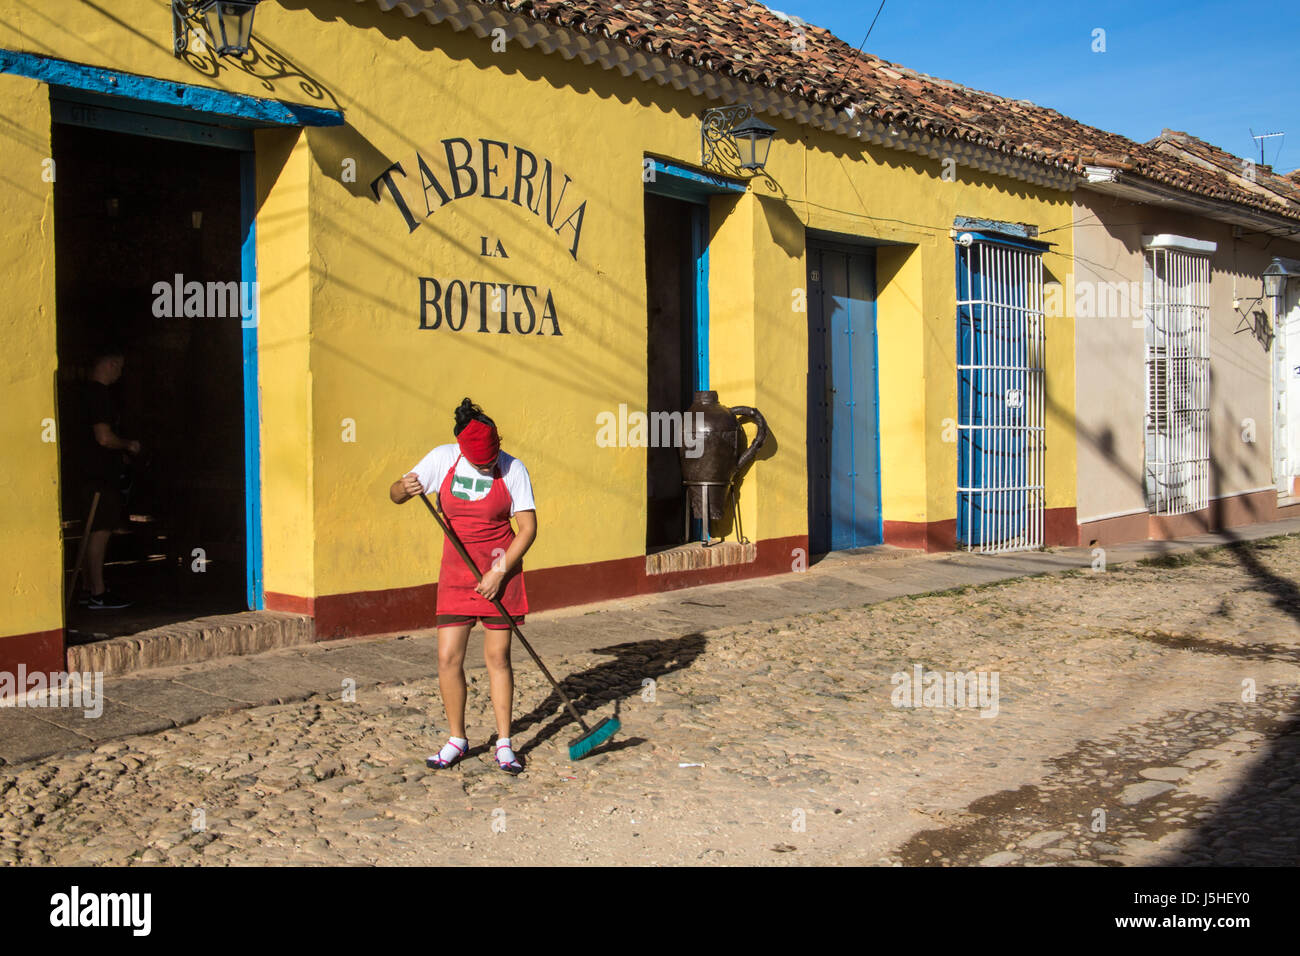 Woman in Trinidad Cuba sweeping cobblestone street outside a tavern - Stock Image